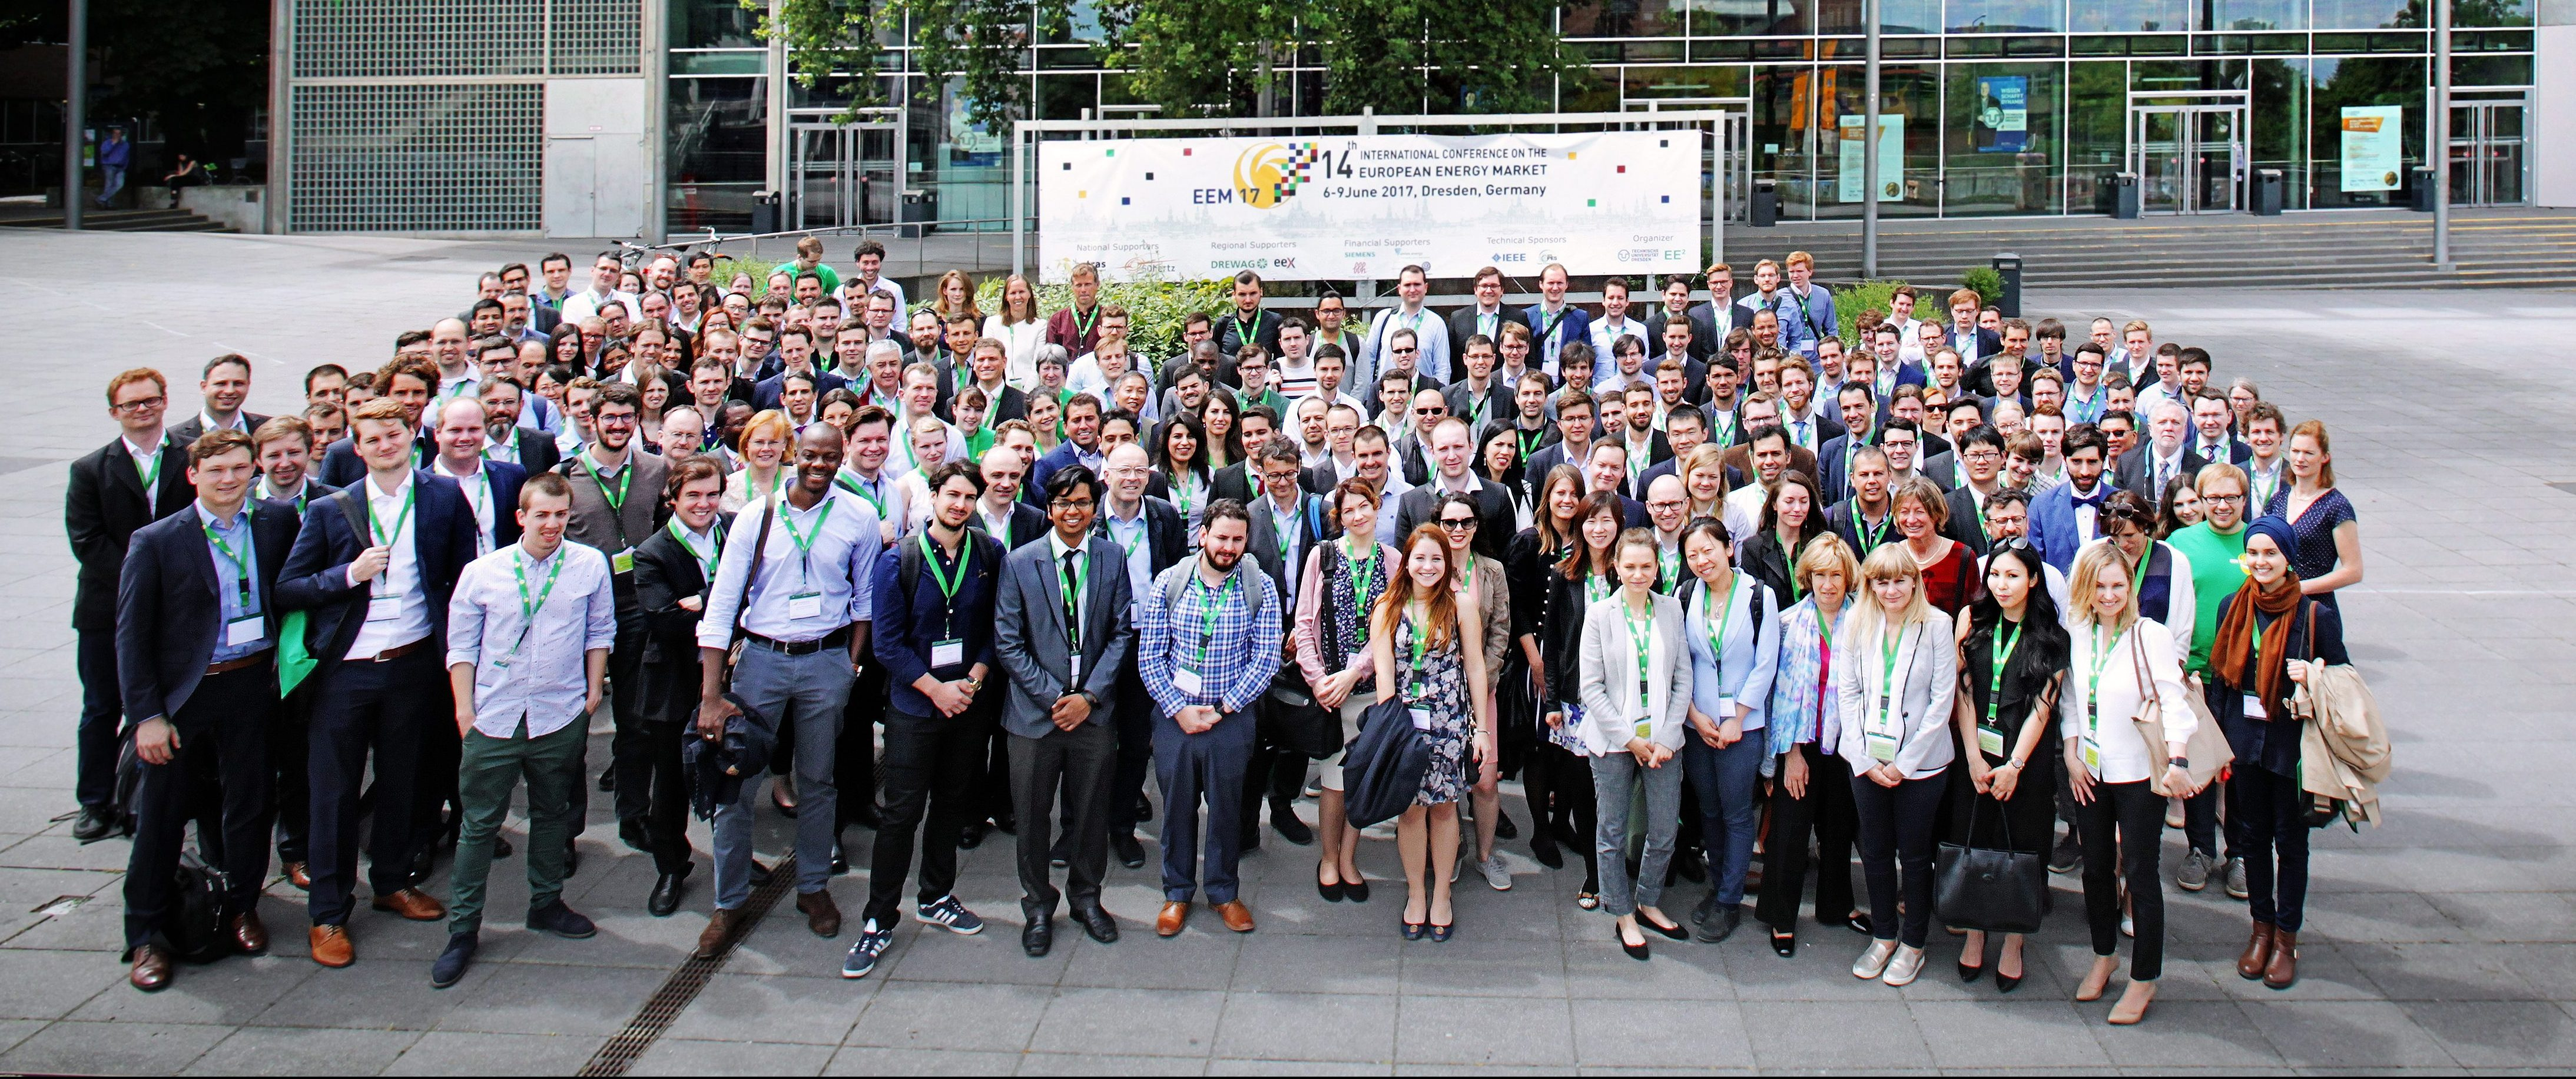 14th International Conference on the European Energy Market